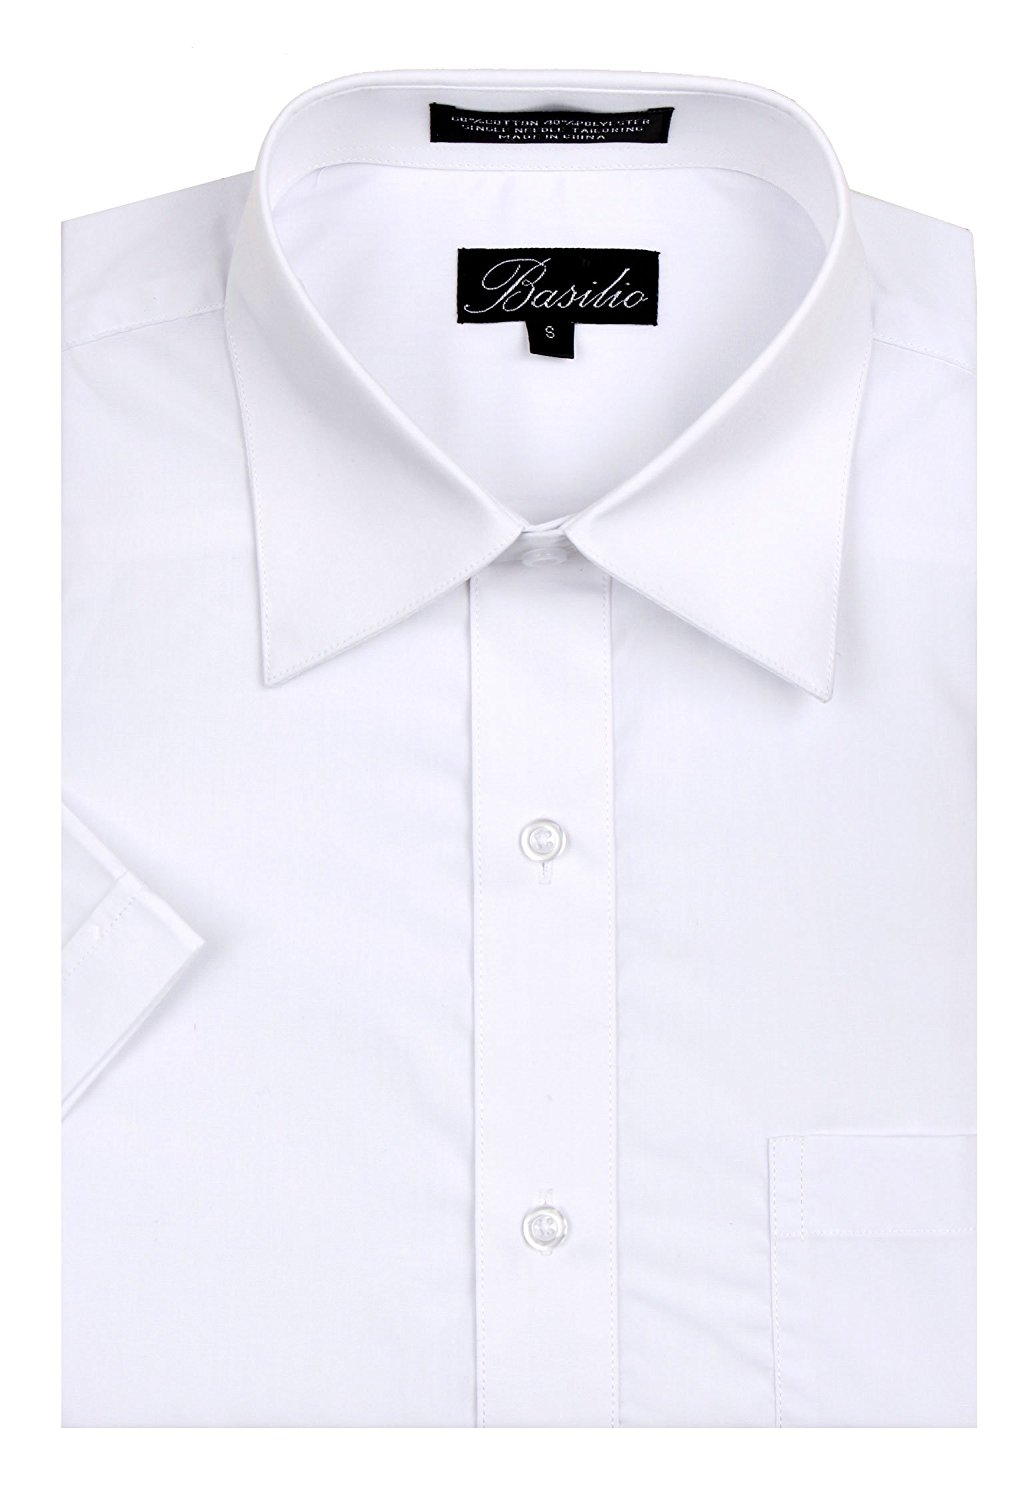 465665b6 Get Quotations · Basilio Men's Short Sleeve Solid Dress Shirt - Many Colors  Available